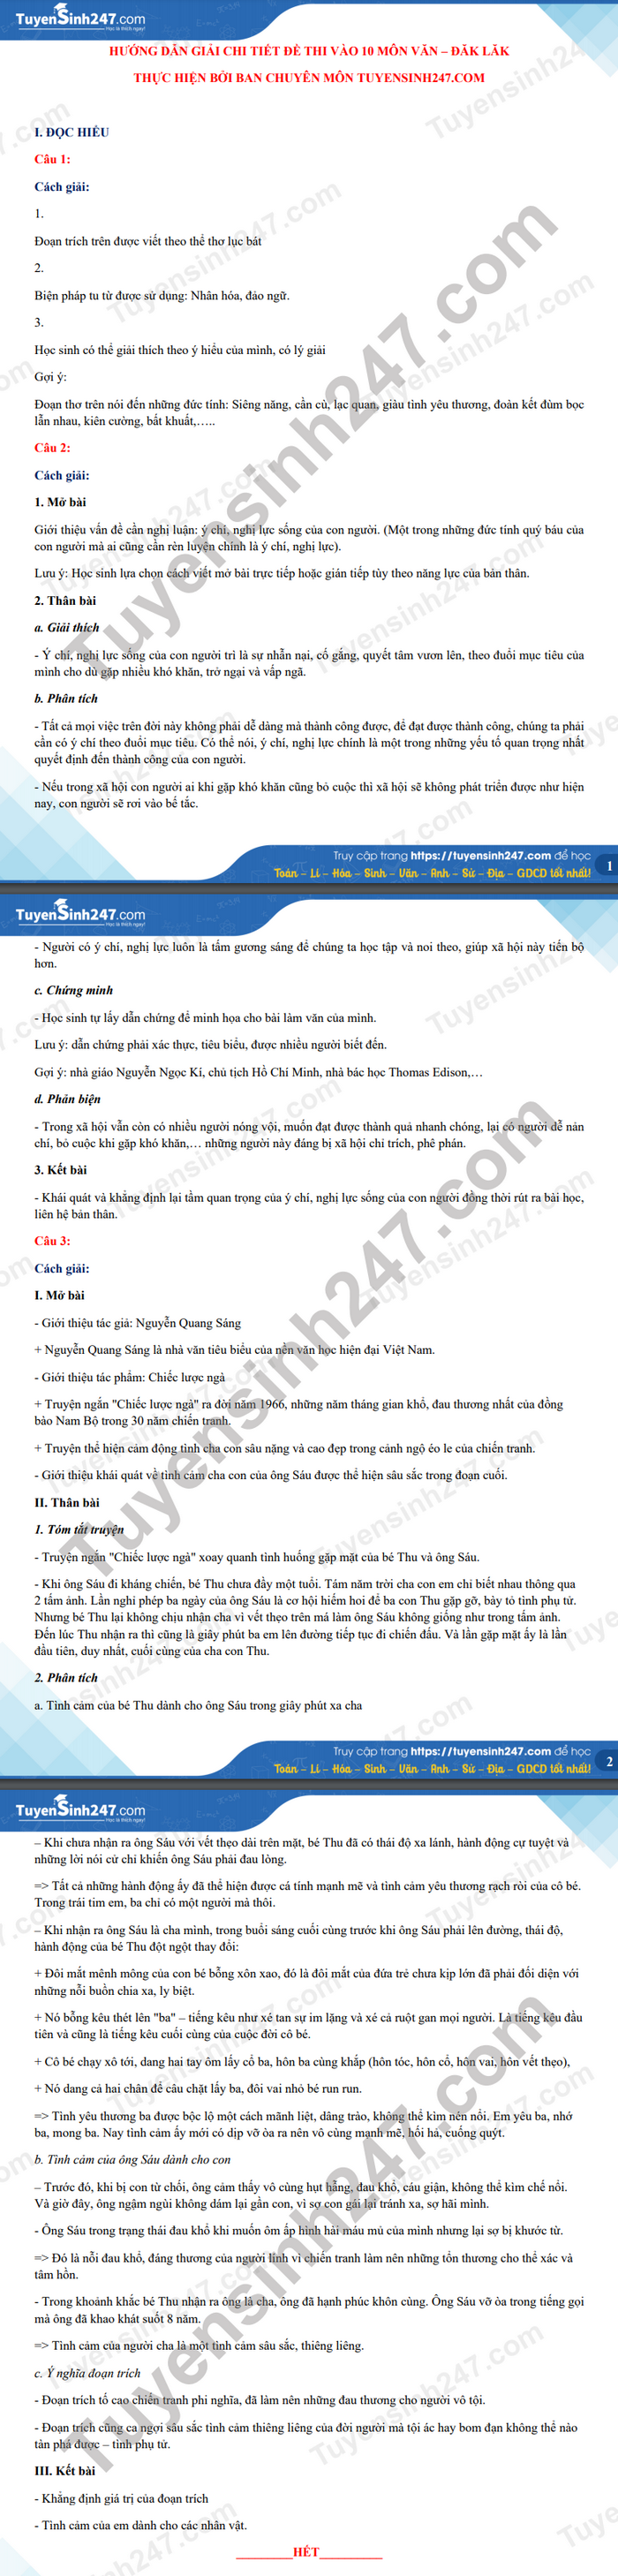 Answers to the exam questions for the 10th grade in Dak Lak province in 2021 3